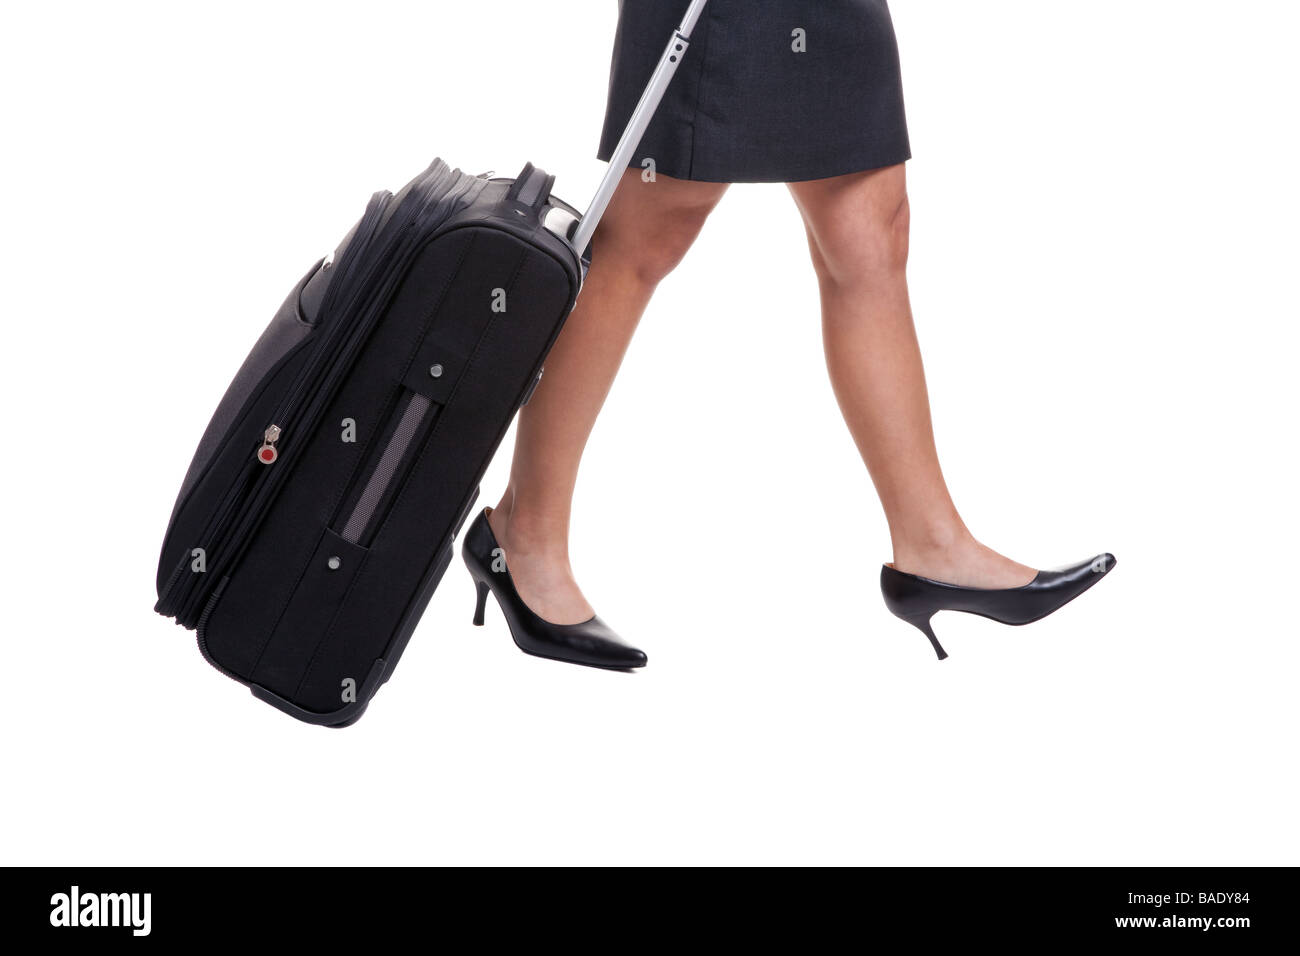 A businesswomans legs in short skirt pulling a suitcase isolated on white background - Stock Image